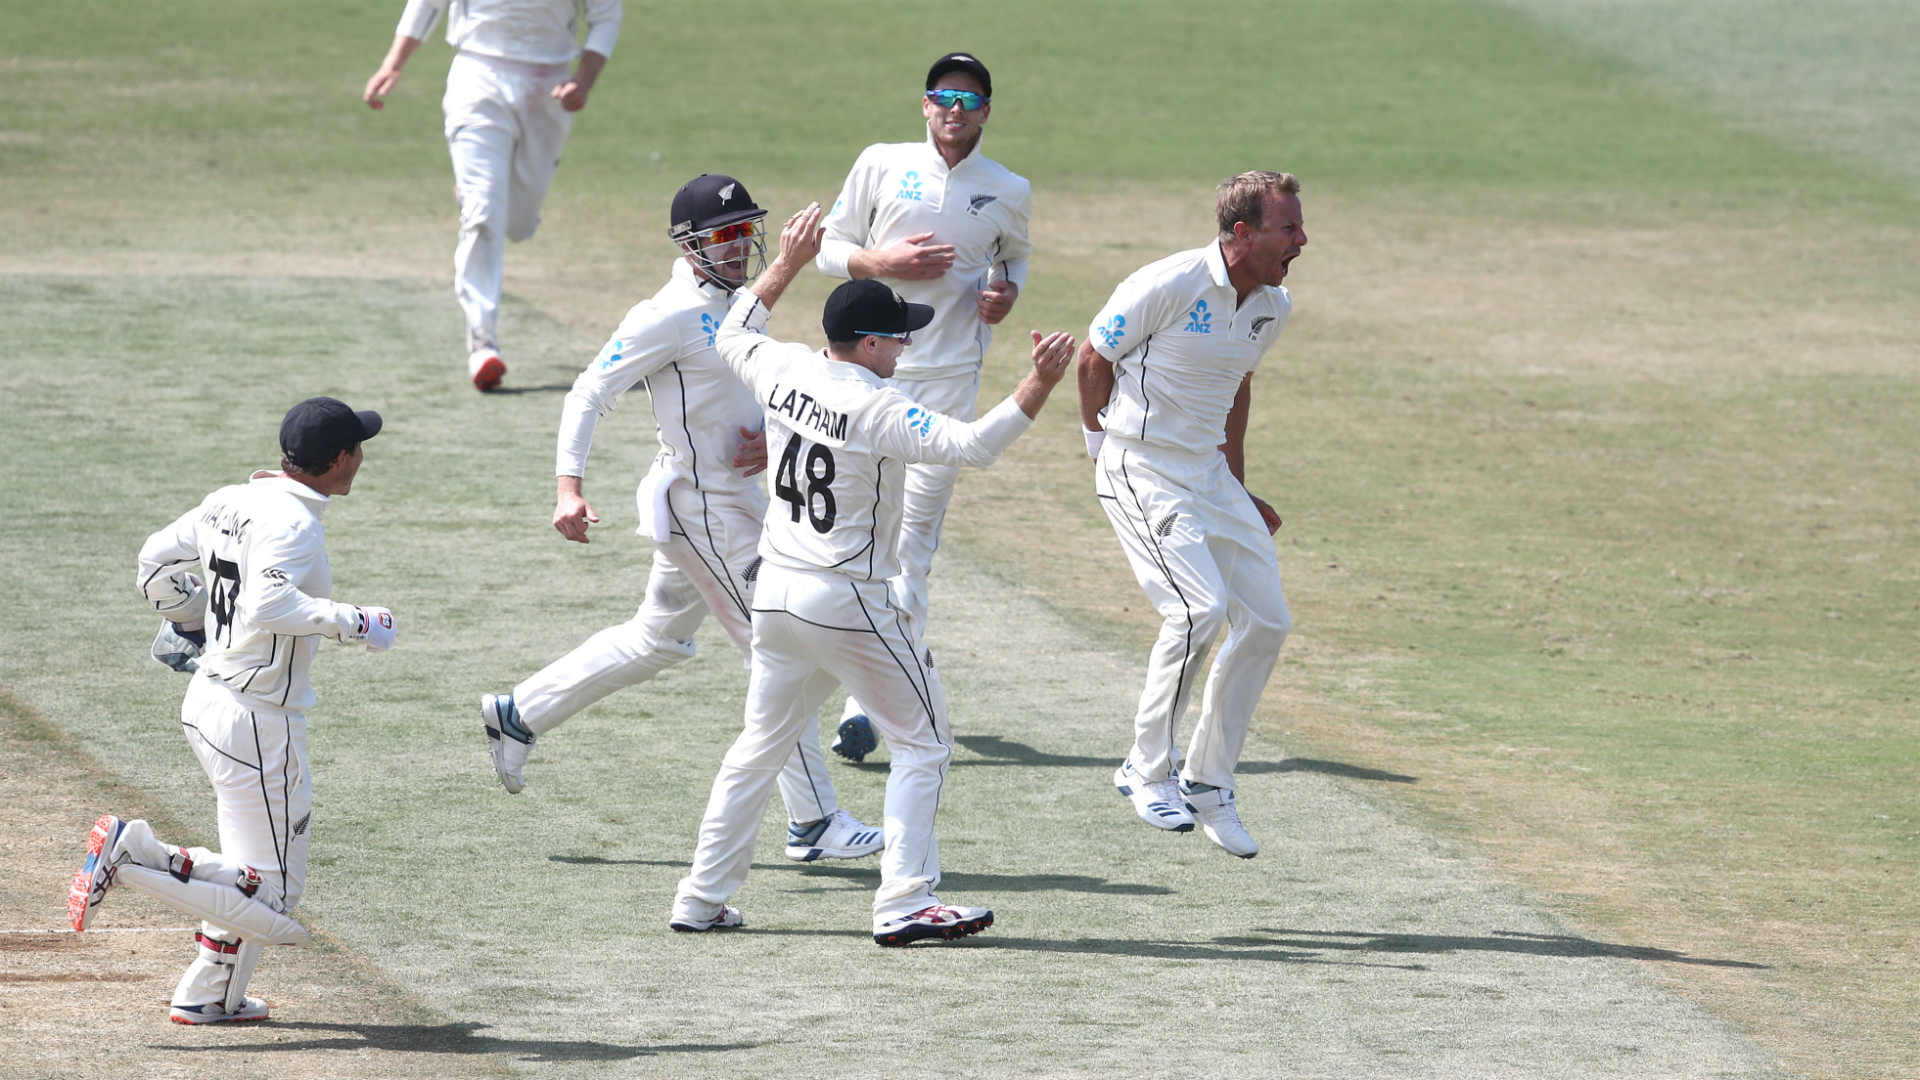 Wagner's five-for seals crushing Black Caps win over England